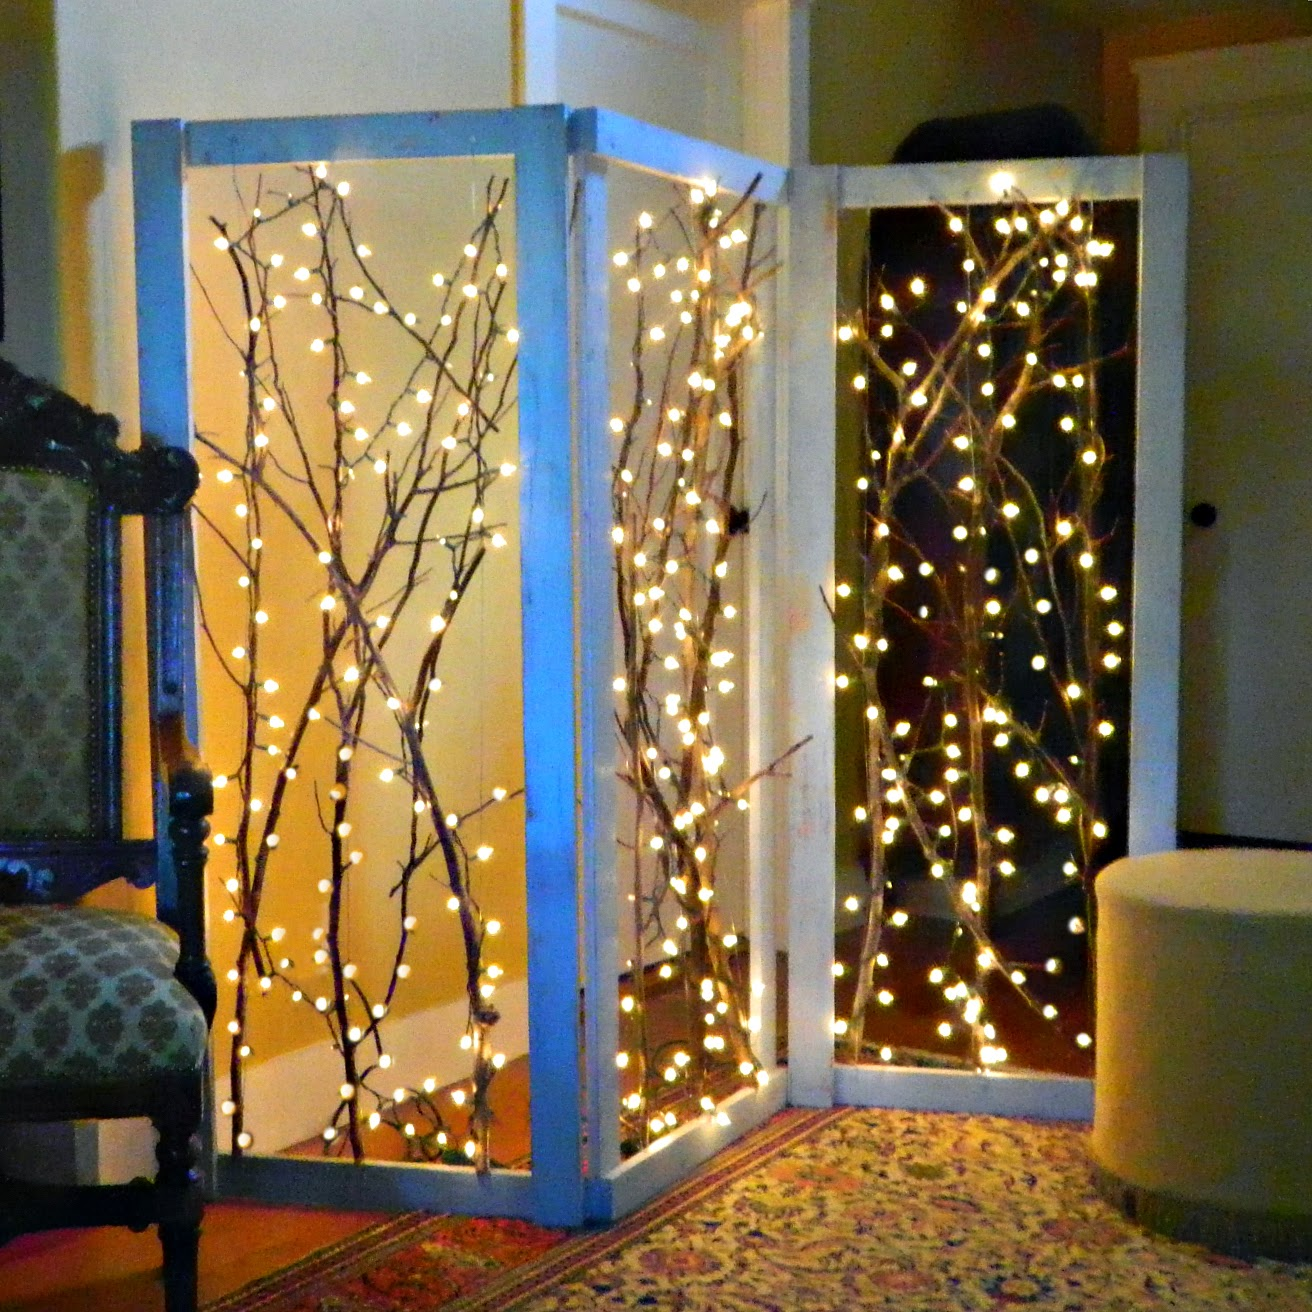 Home Lighting Design Ideas: Mark Montano: Twinkling Branches Room Divider DIY